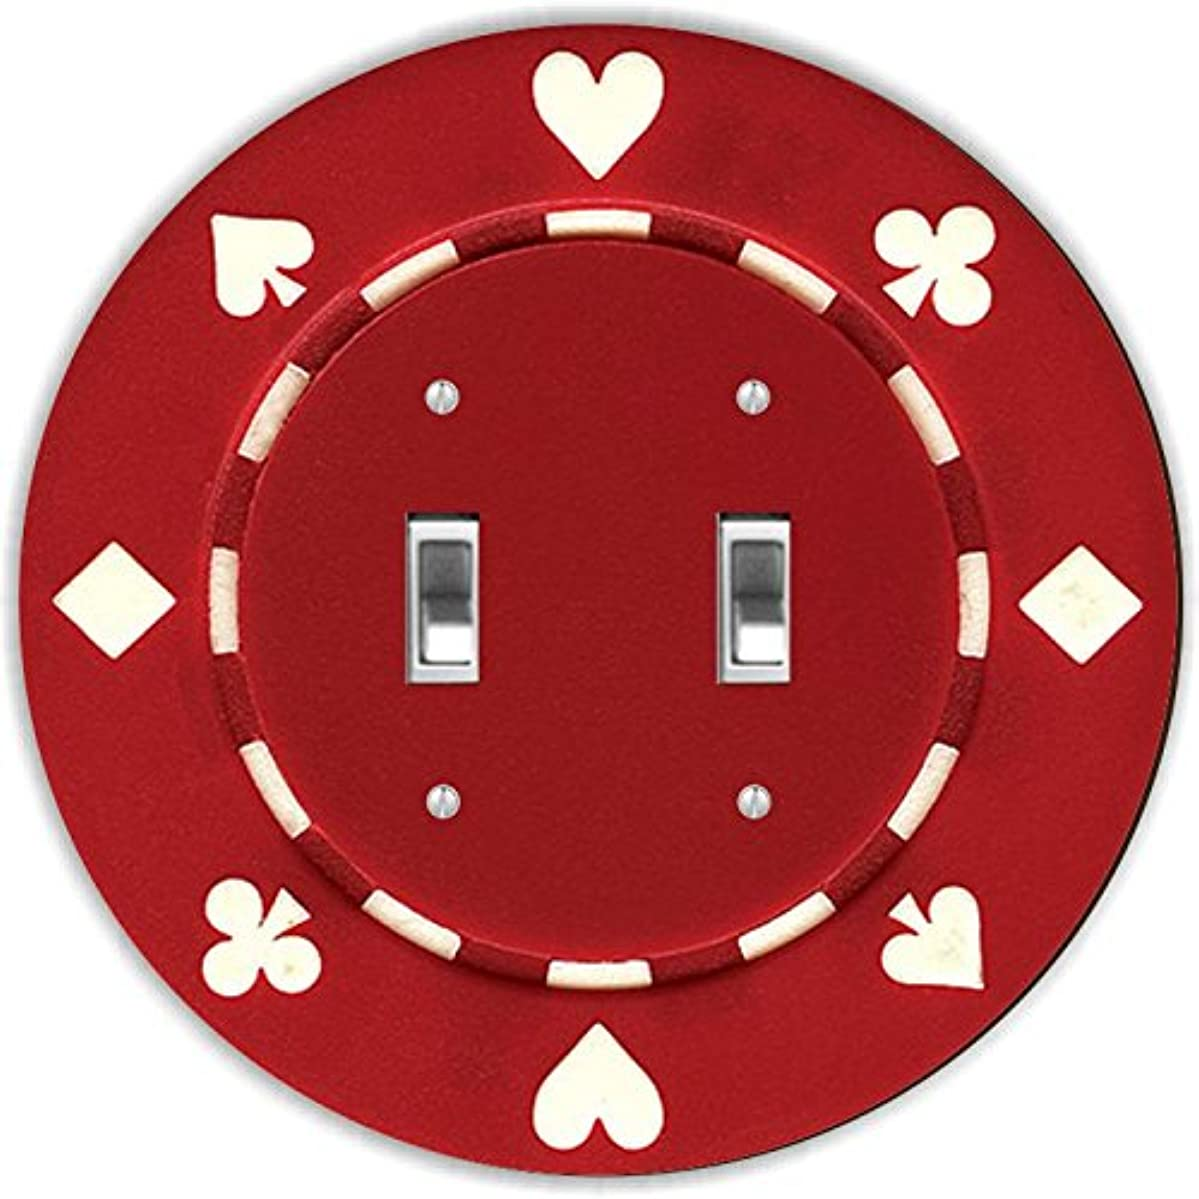 Rikki Knight RND-LSPDBL-83 Poker Chip Round Design Double Toggle Light Switch Plate, Red